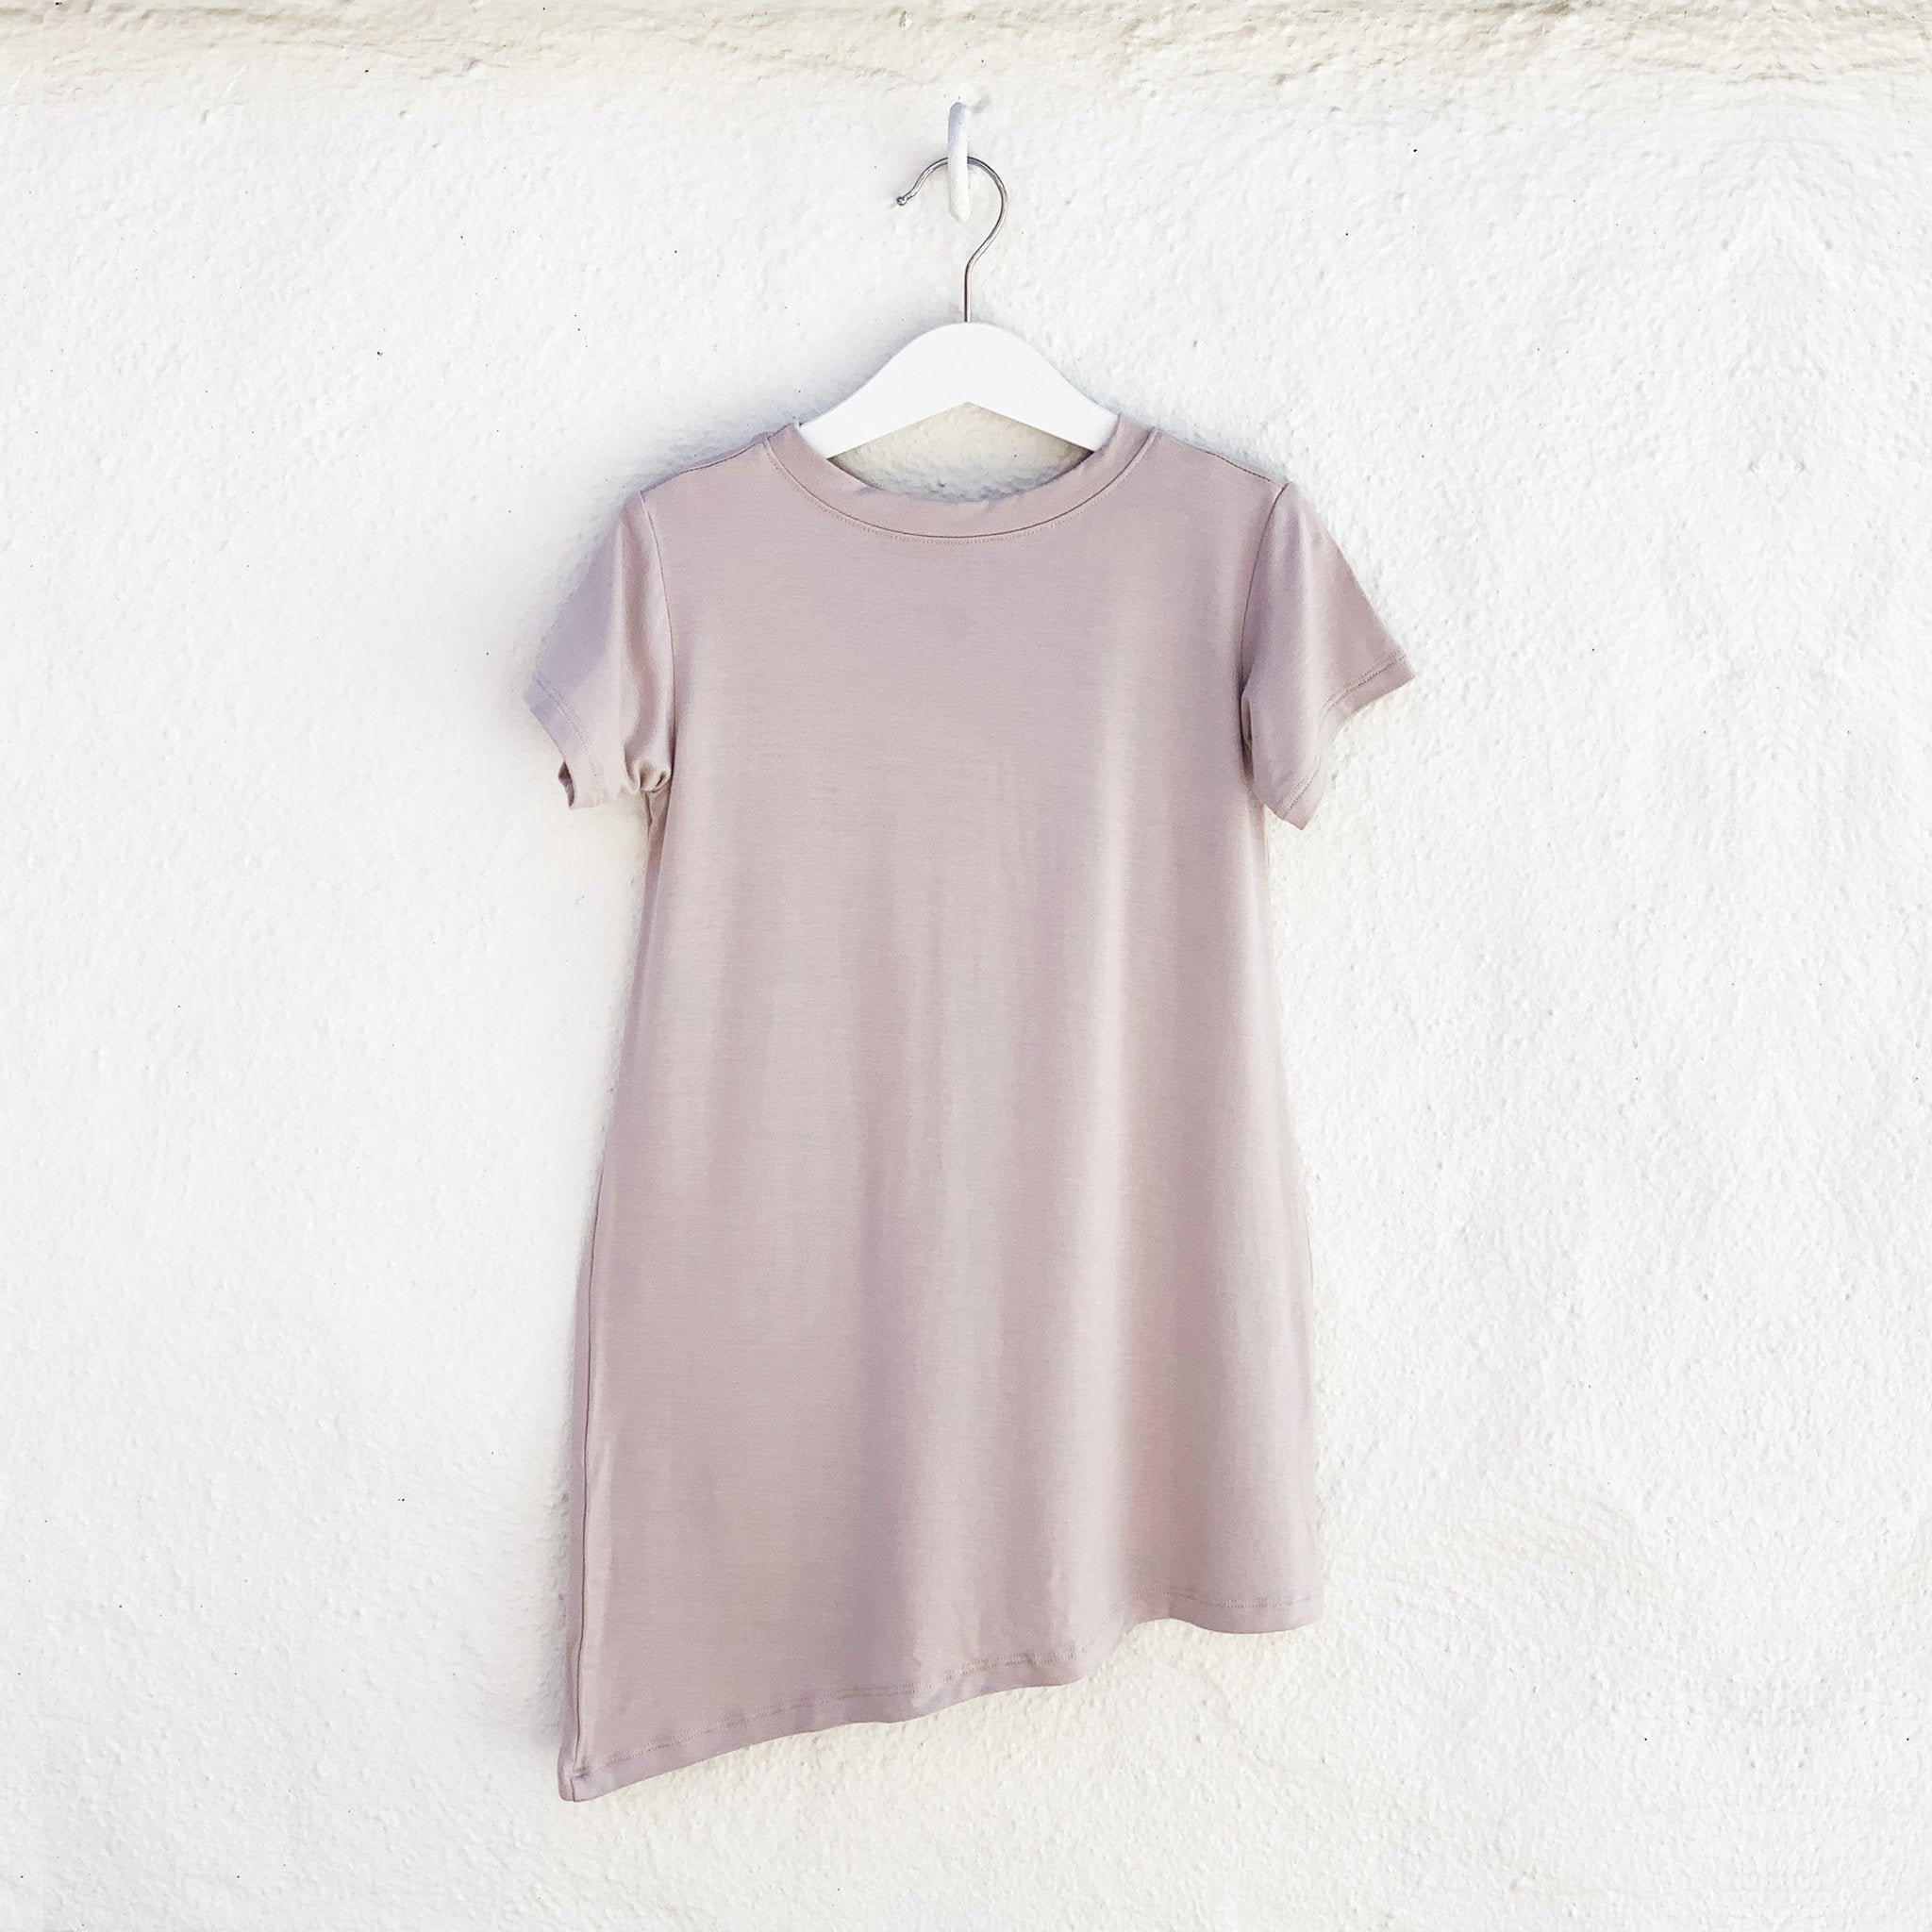 Asymmetric T-shirt Dress - Mocha